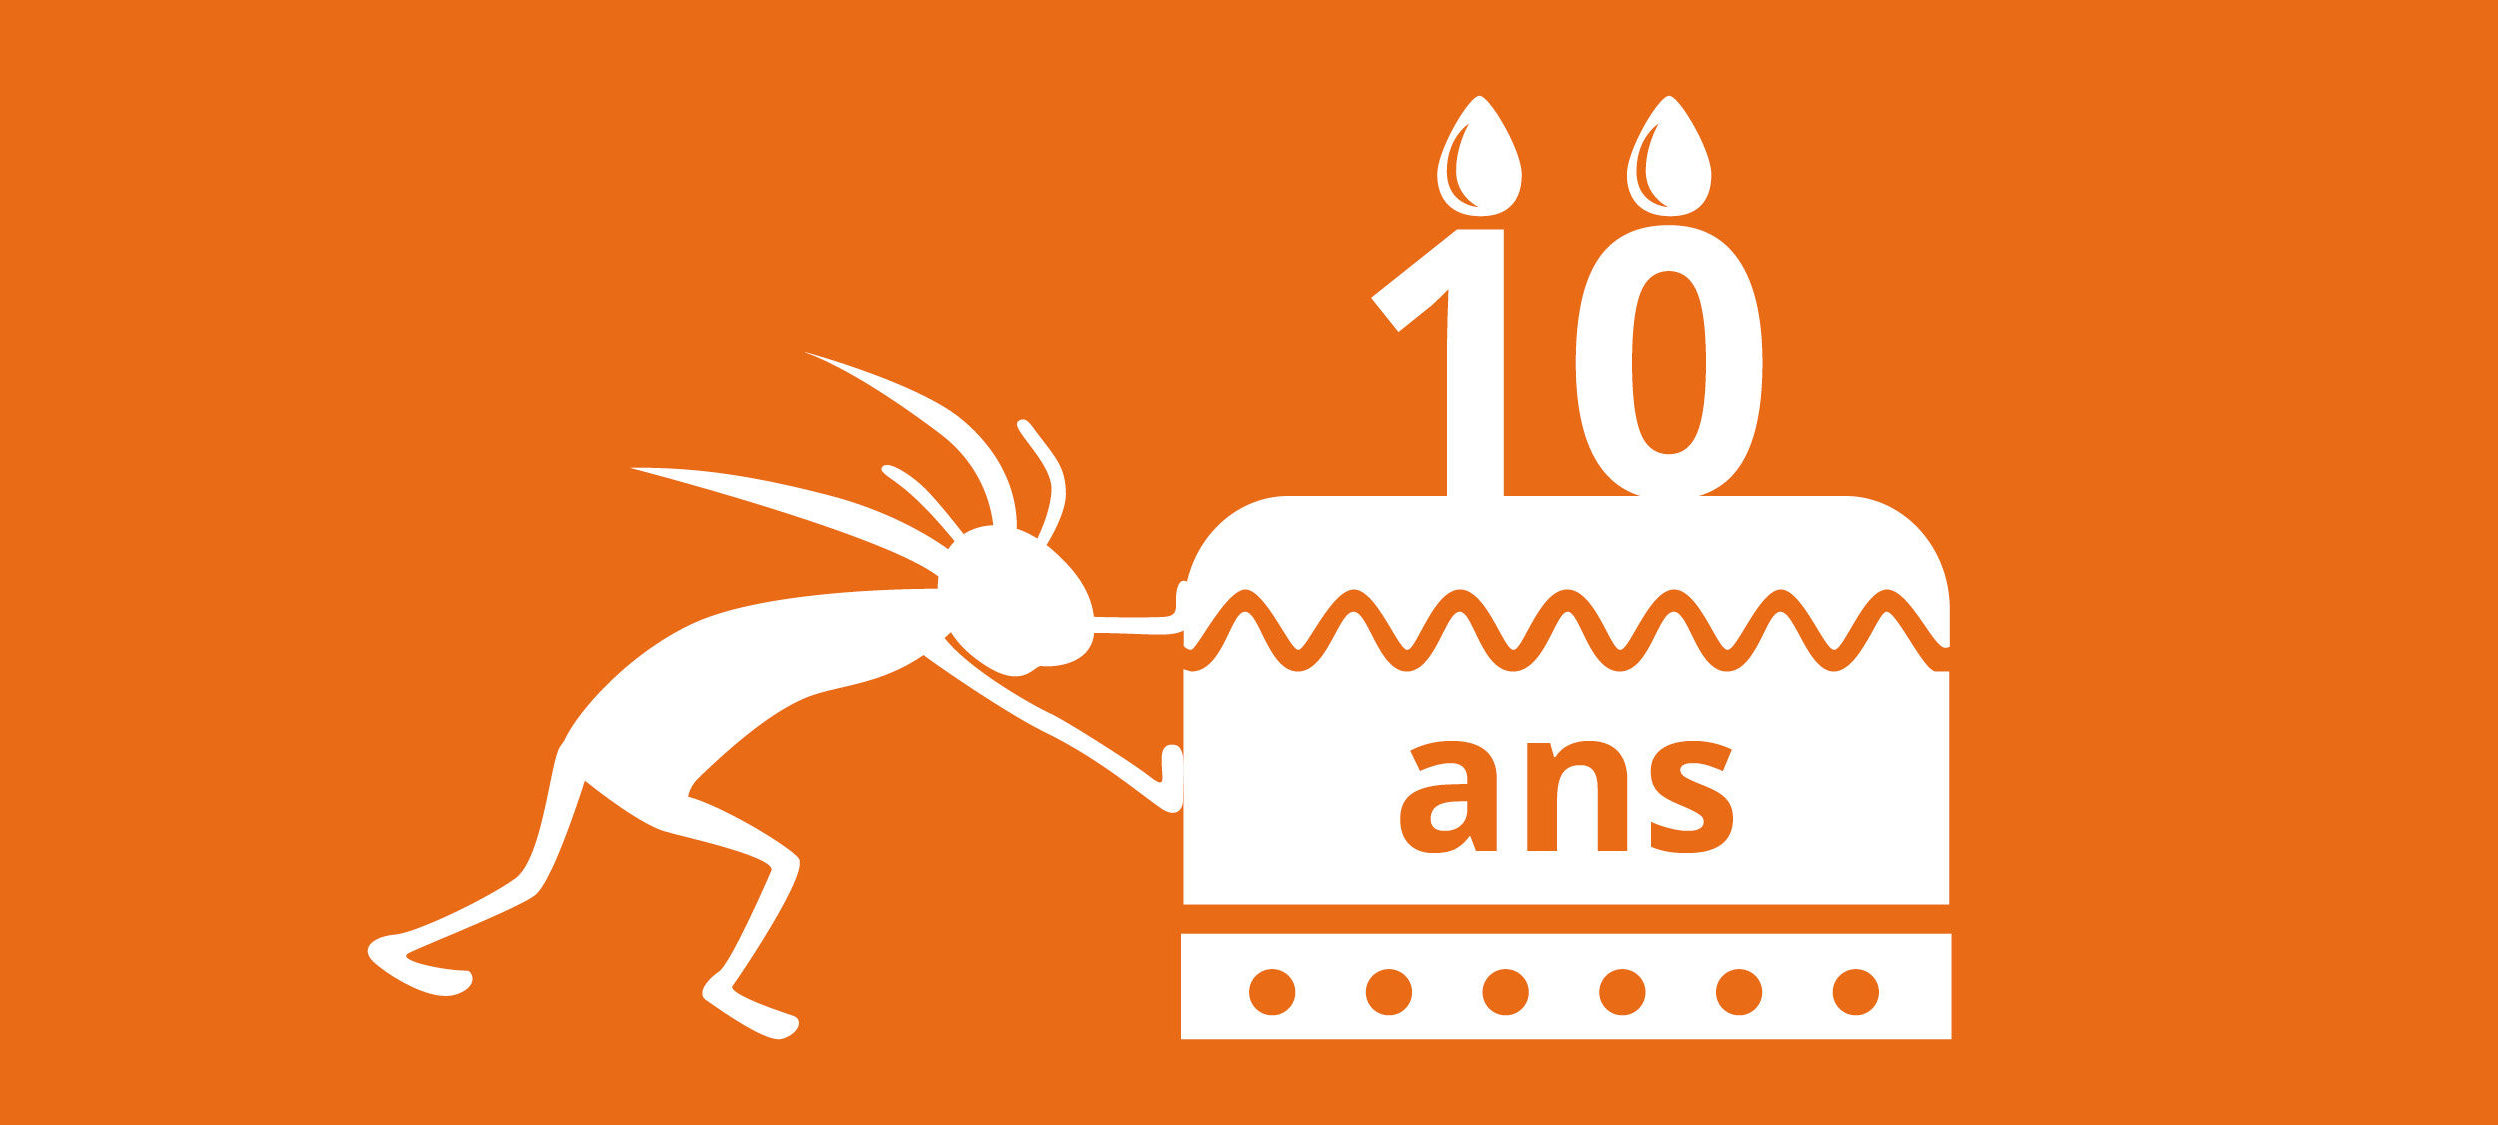 Les 10 ans de For Drug Consulting